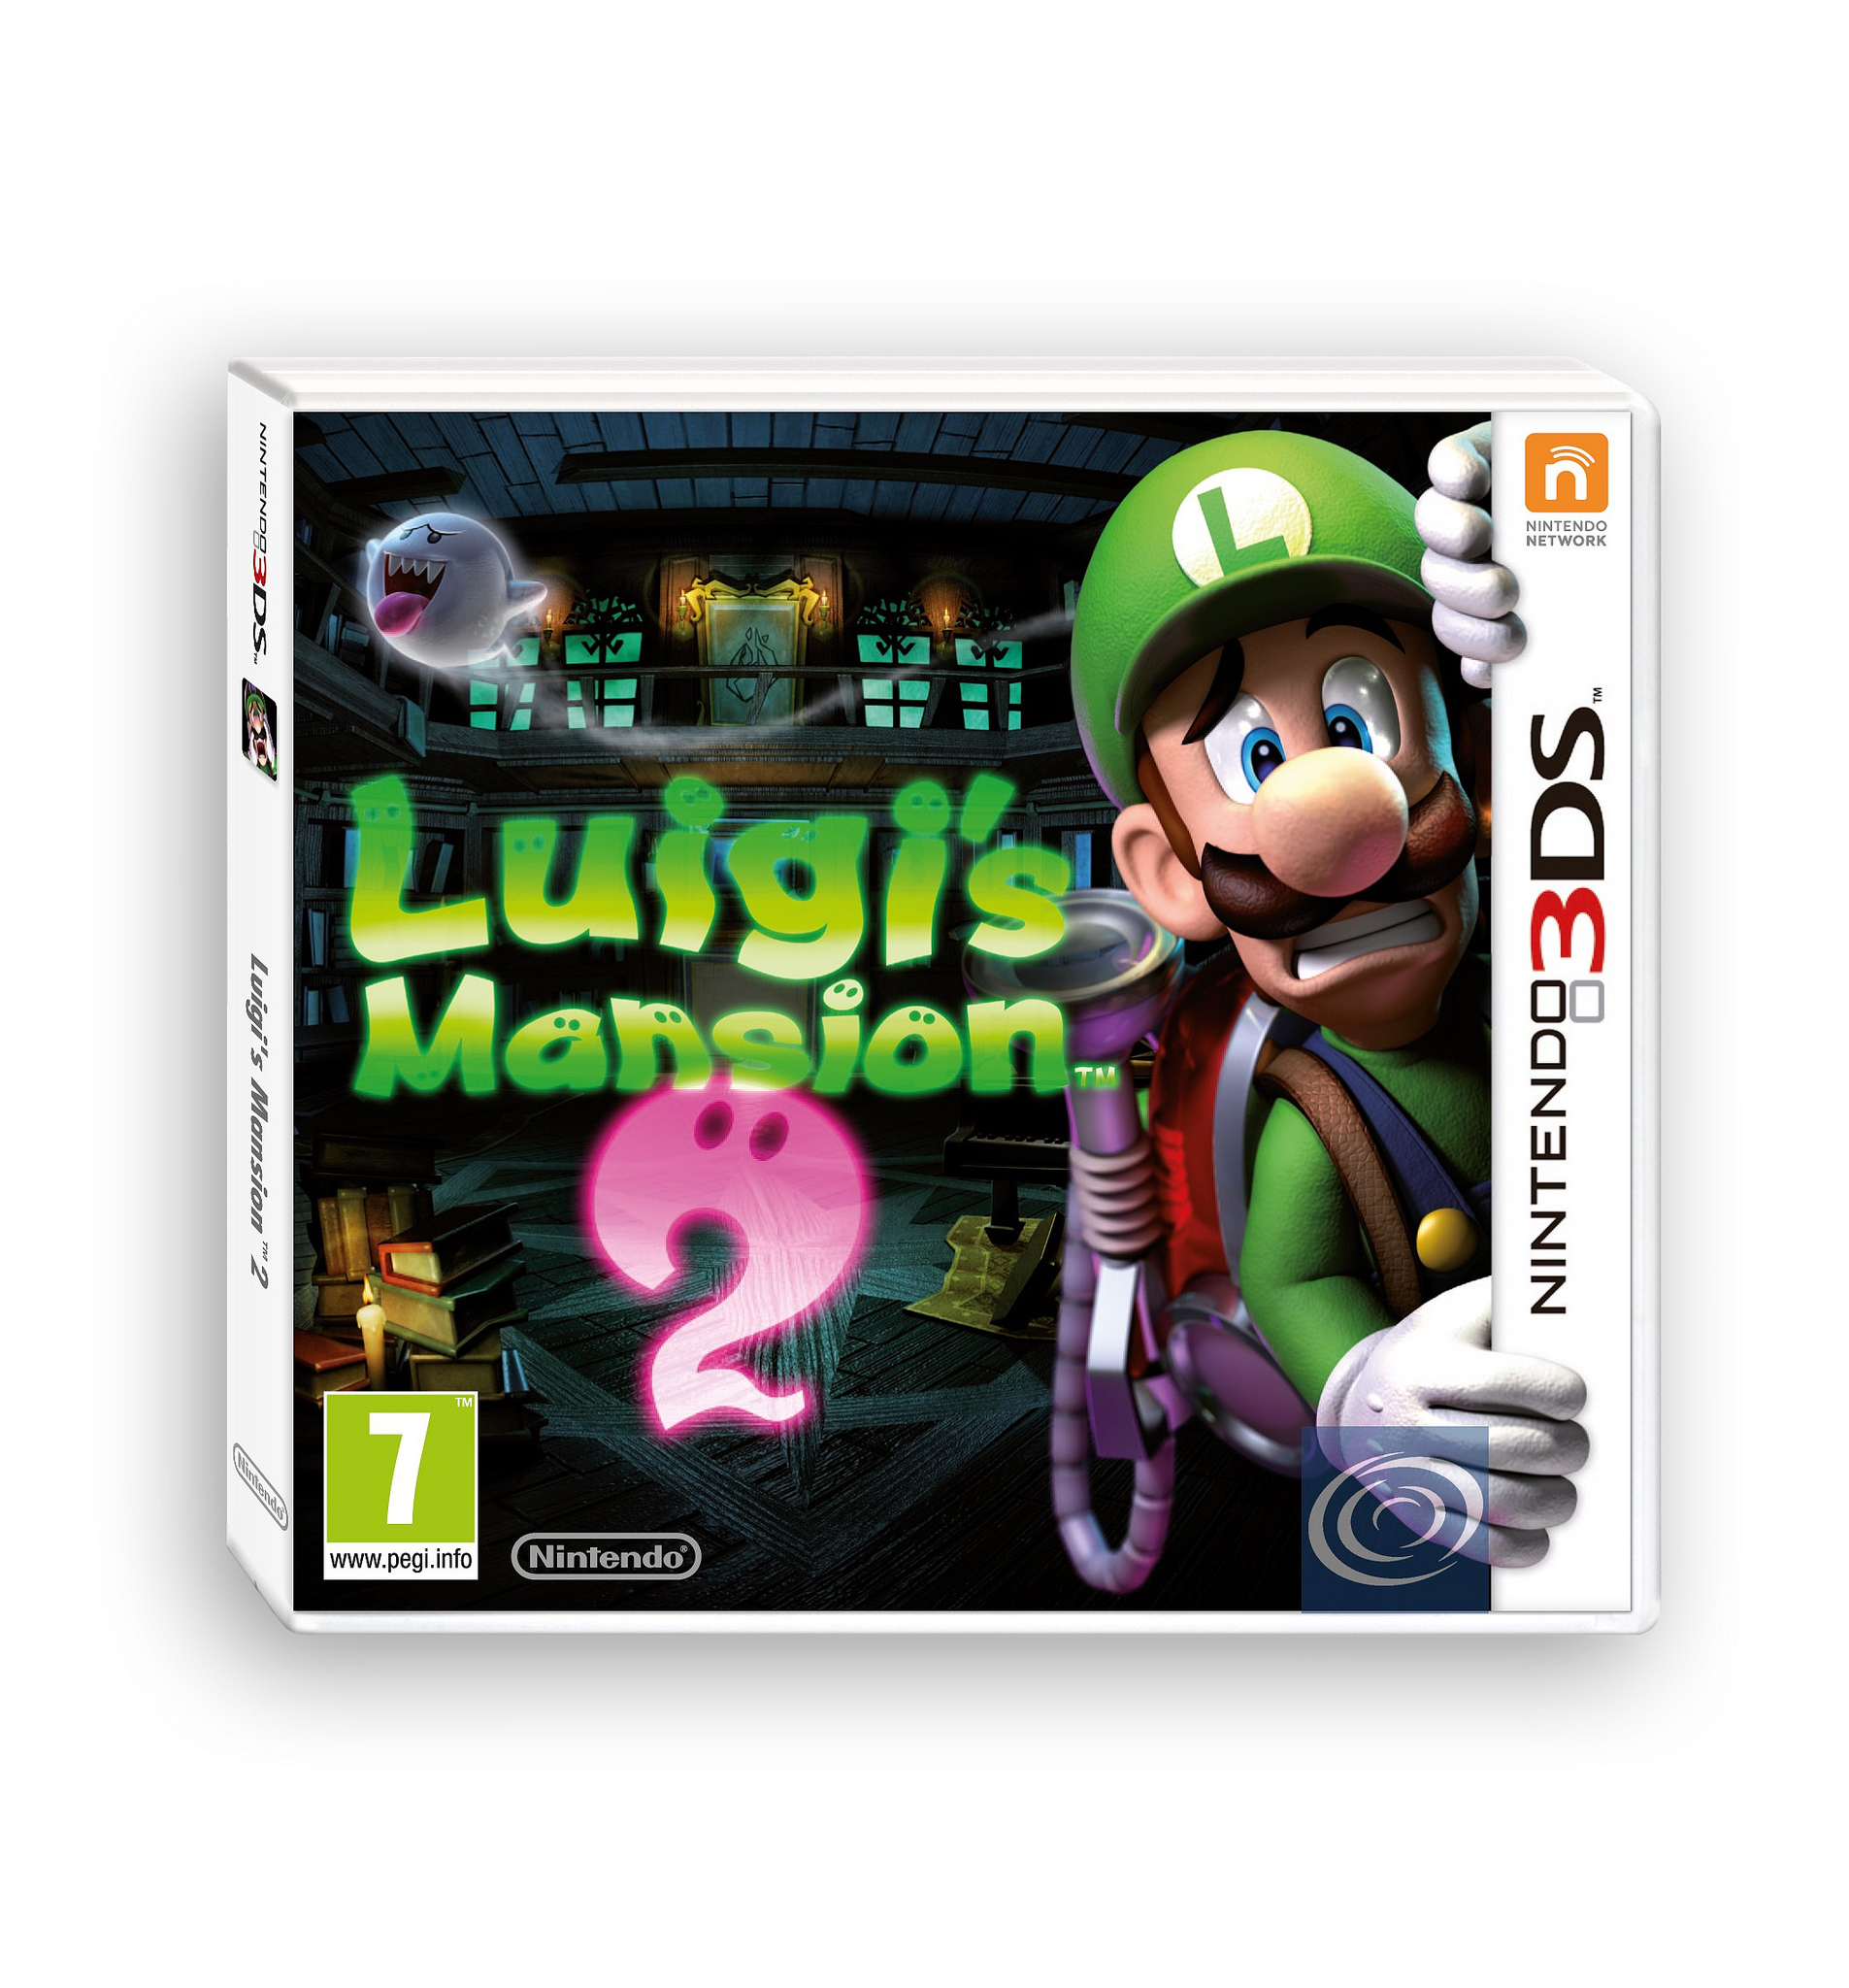 Luigi S Mansion 3ds : Luigi s mansion coming to europe in march plus box art